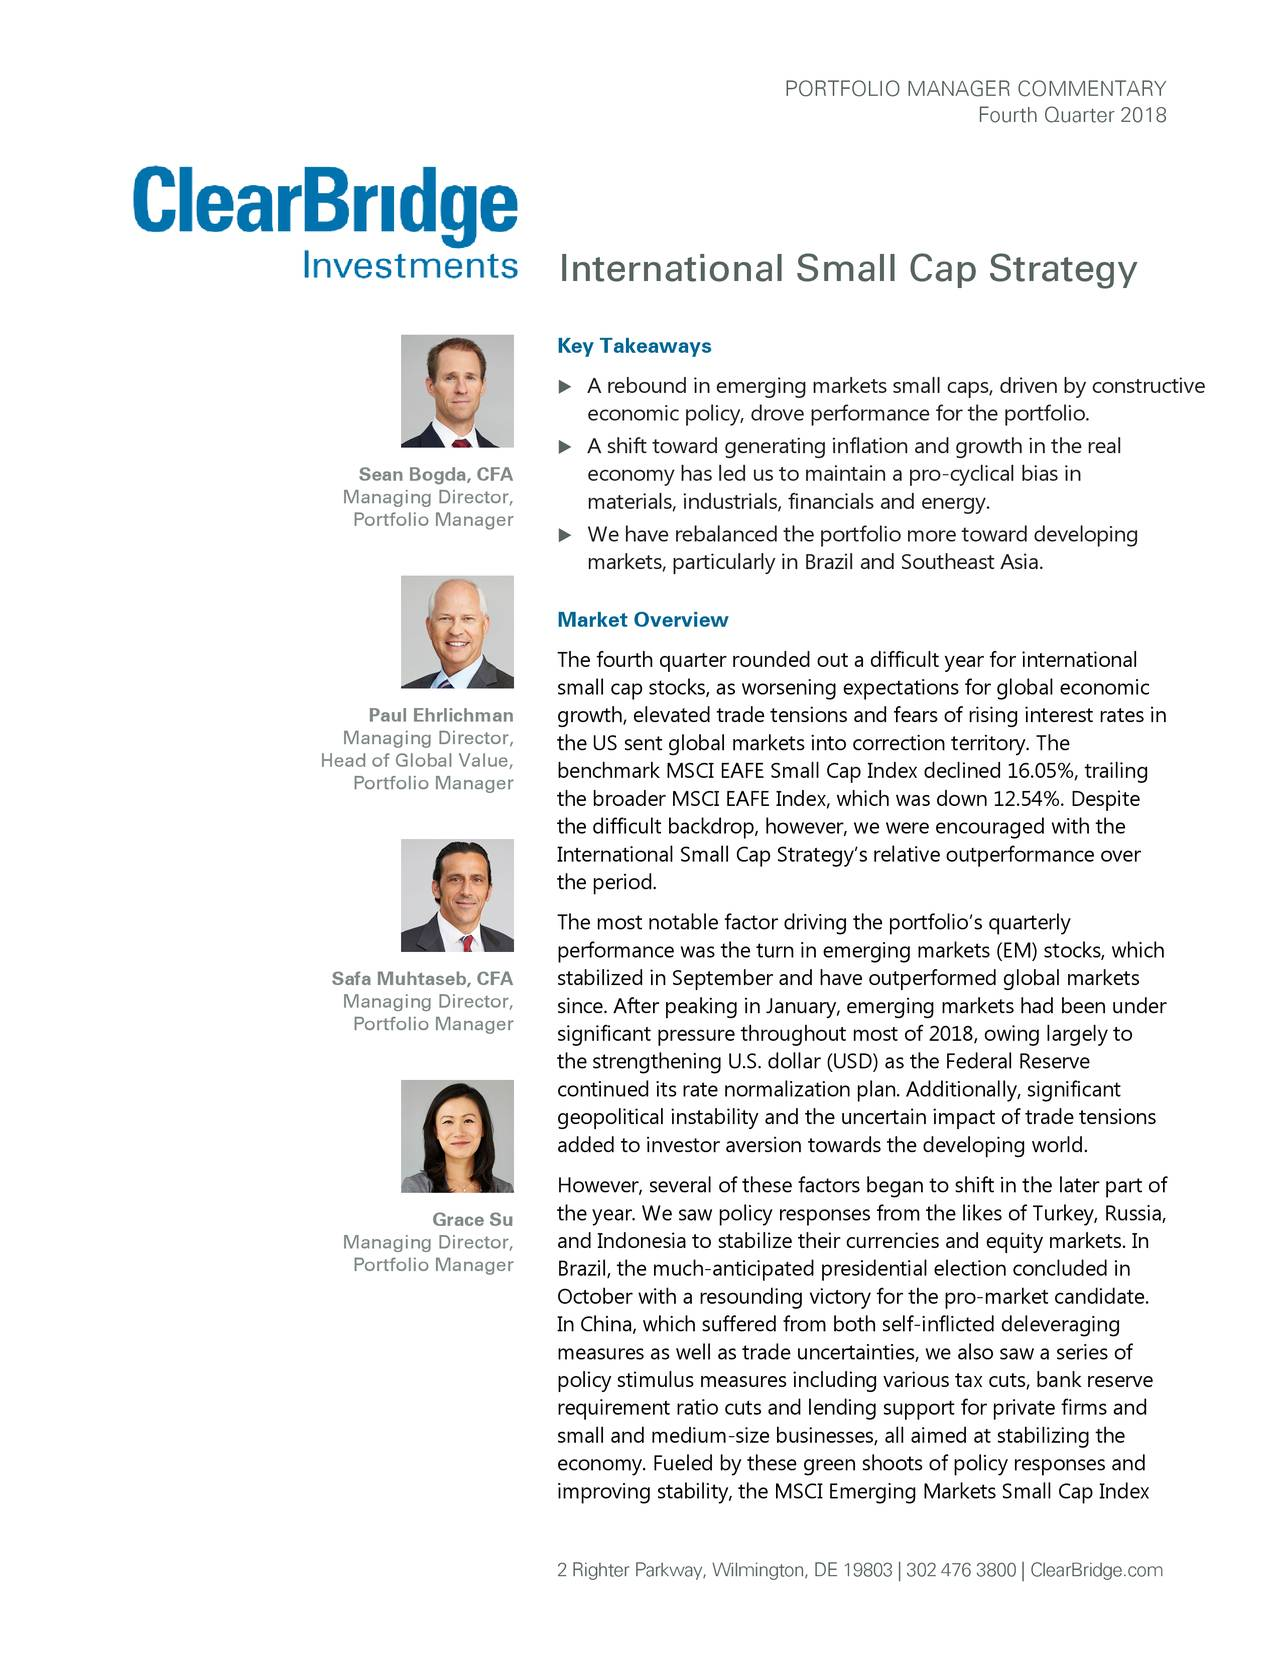 Fourth Quarter 2018 International Small Cap Strategy Key Takeaways  A rebound in emerging markets small caps, driven by constructive economic policy, drove performance for the portfolio.  A shift toward generating inflation and growth in the real Sean Bogda, CFA economy has led us to maintain a pro -cyclical bias in Managing Director, materials, industrials, financials and energy. Portfolio Manager  We have rebalanced the portfolio more toward developing markets, particularly in Brazil and Southeast Asia. Market Overview The fourth quarter rounded out a difficult year for international small cap stocks, as worsening expectations for global economic Paul Ehrlichman growth, elevated trade tensions and fears of rising interest rates in Managing Director, the US sent global markets into correction territory. The Head of Global Value, Portfolio Manager benchmark MSCI EAFE Small Cap Index declined 16.05%, trailing the broader MSCI EAFE Index, which was down 12.54%. Despite the difficult backdrop, however, we were encouraged with the International Small Cap Strategy's relative outperformance over the period. The most notable factor driving the portfolio's quarterly performance was the turn in emerging markets (EM) stocks, which Safa Muhtaseb, CFA stabilized in September and have outperformed global markets Managing Director, since. After peaking in January, emerging markets had been under Portfolio Manager significant pressure throughout most of 2018, owing largely to the strengthening U.S. dollar (USD) as the Federal Reserve continued its rate normalization plan. Additionally, significant geopolitical instability and the uncertain impact of trade tensions added to investor aversion towards the developing world. However, several of these factors began to shift in the later part of Grace Su the year. We saw policy responses from the likes of Turkey, Russia, Managing Director, and Indonesia to stabilize their currencies and equity markets. In Portfolio Manager Brazil, the mu